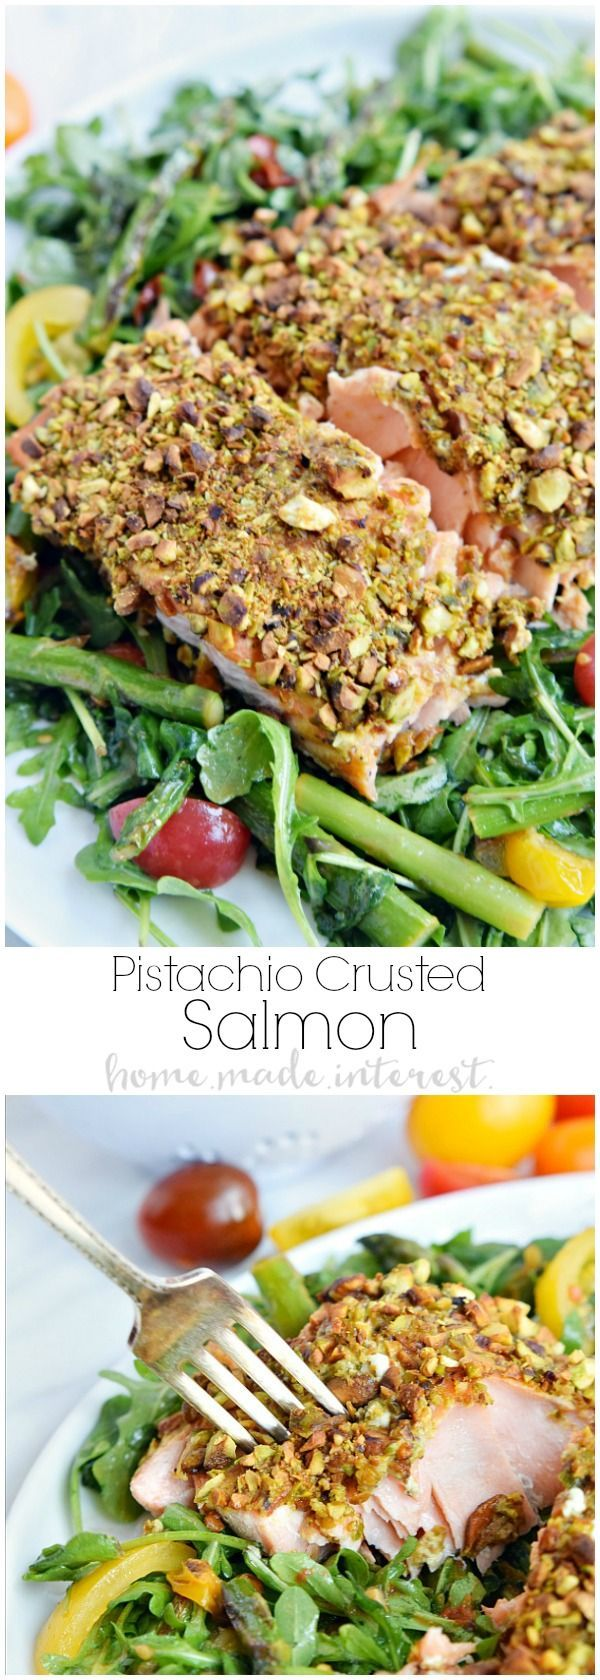 This Pistachio Crusted Salmon recipe is elegant enough for a dinner party and makes an easy weeknight dinner recipe. Pistachio and Dijon mustard pair together perfectly in this healthy low carb recipe. AD VersatilityofSlate /geappliances/